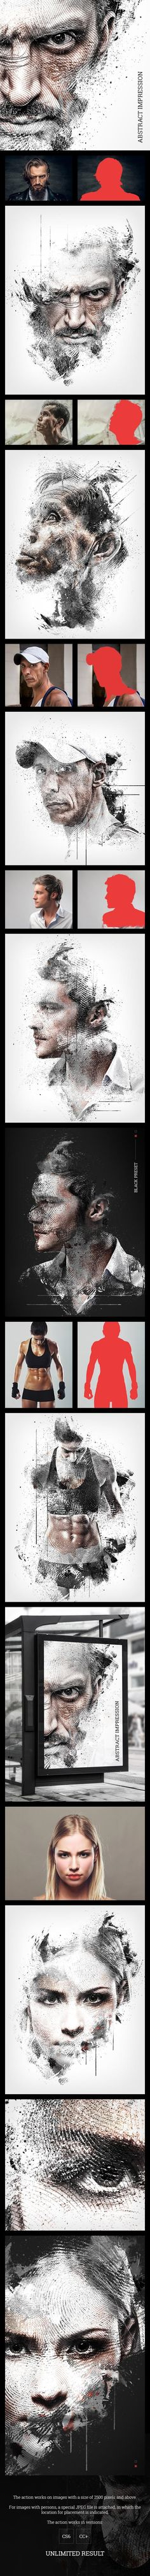 Abstract Impression Photoshop Action - GraphicRiver #BestDesignResources